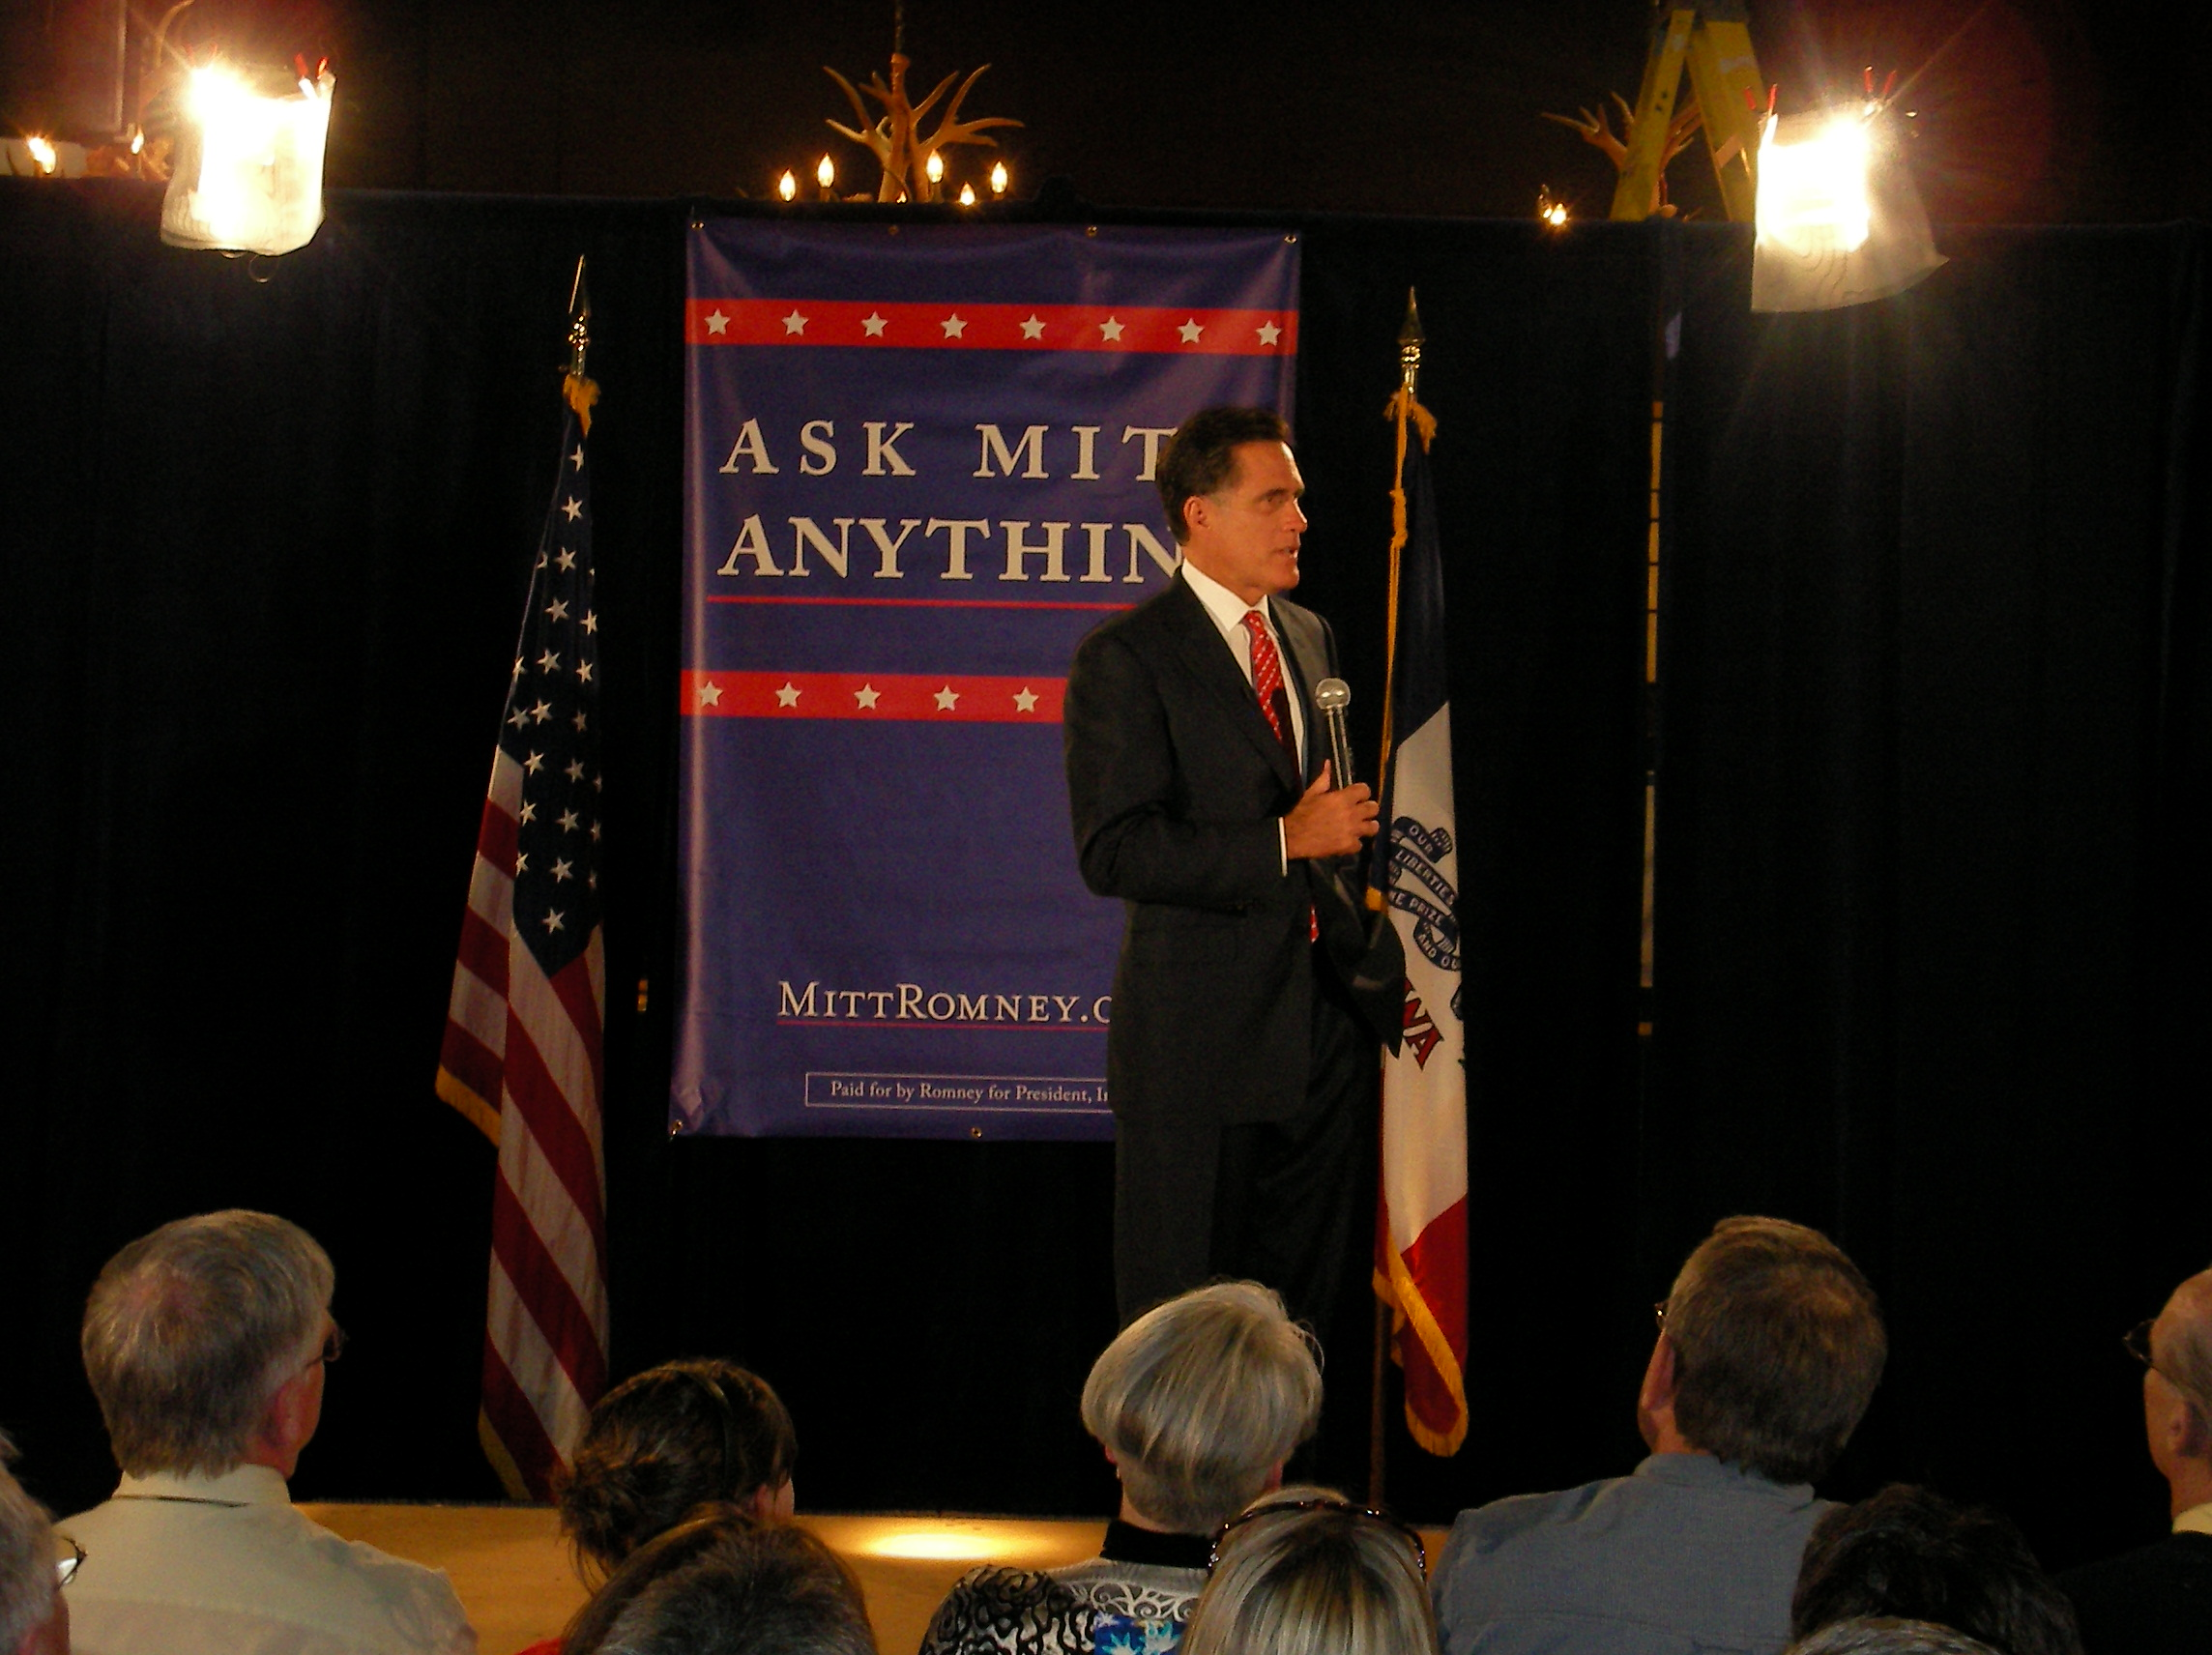 Mitt Romney addressing an audience from atop a stage